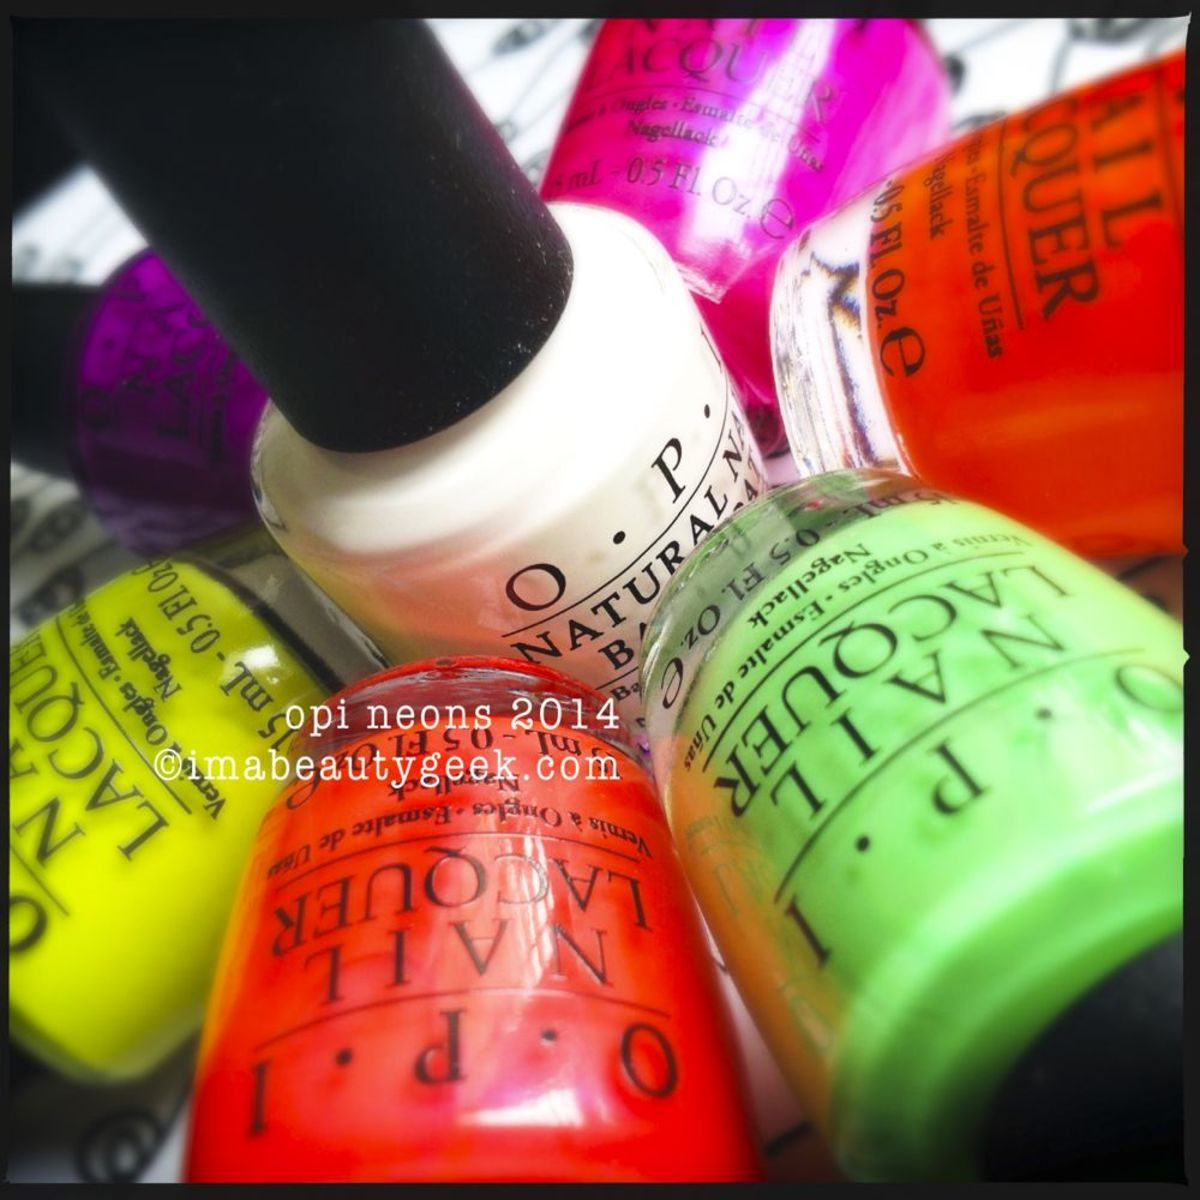 OPI Neons 2014: Your First Complete Collection Swatches - Beautygeeks